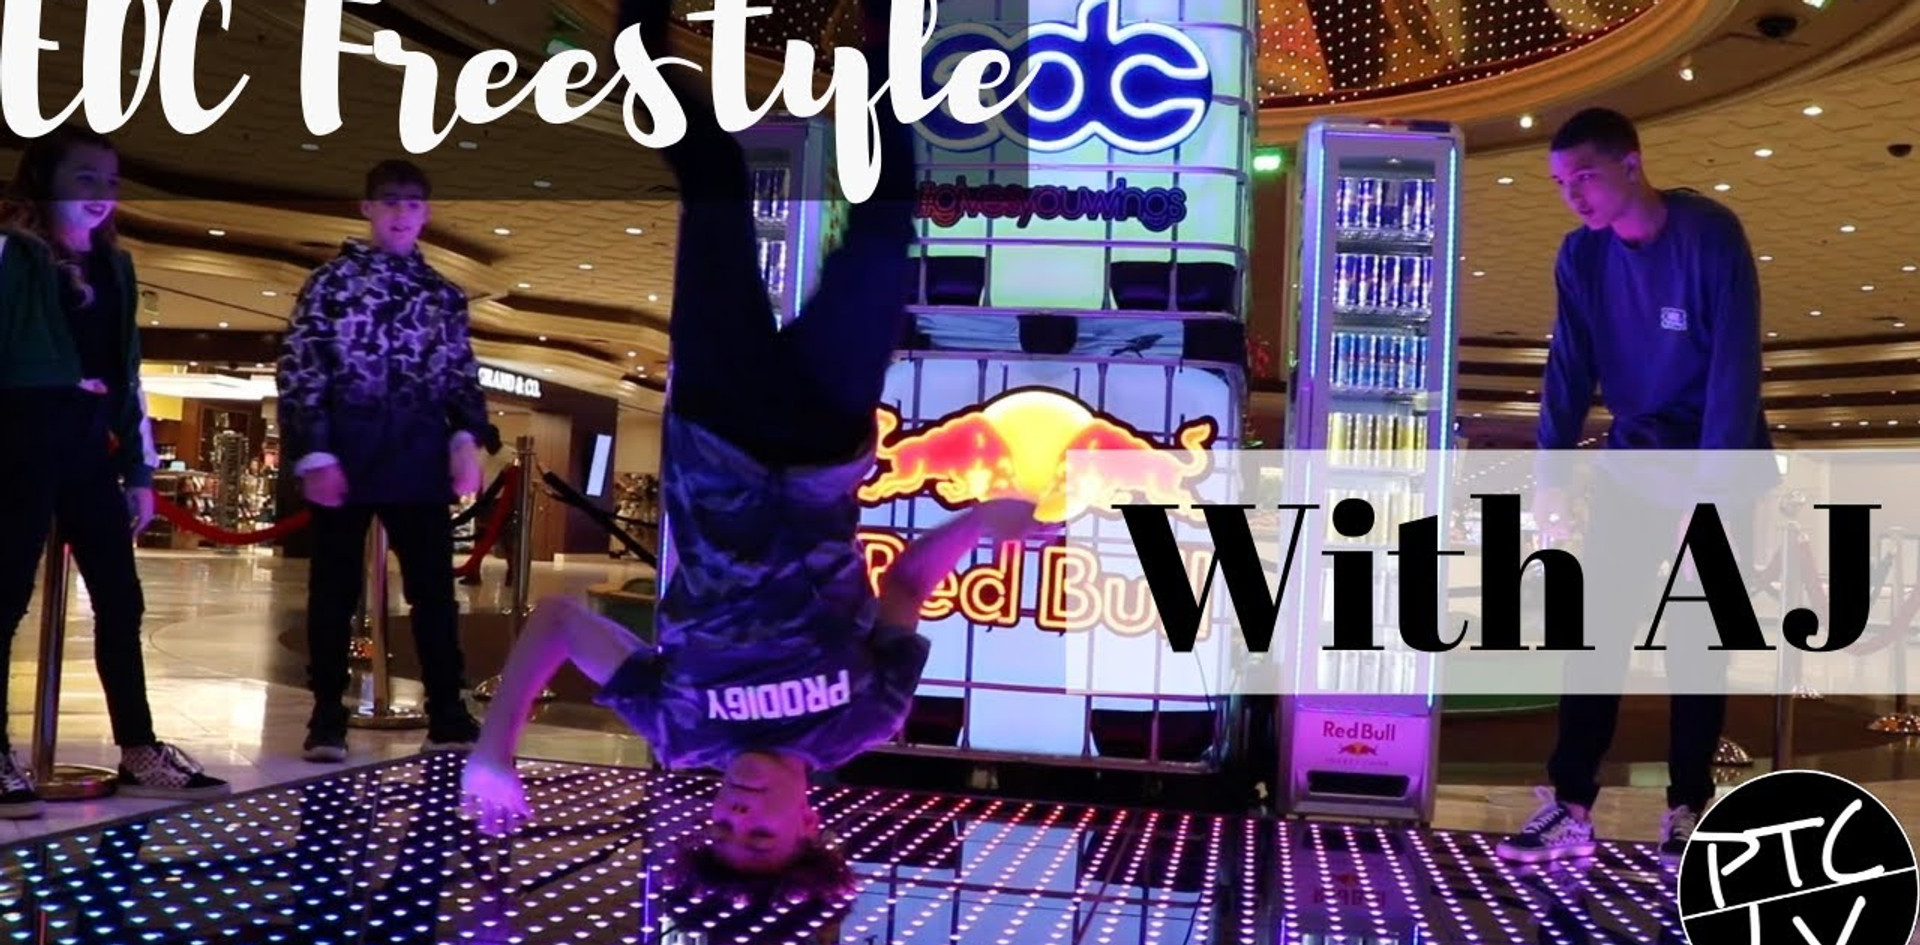 AJ Freestyles at EDC Red Bull Event